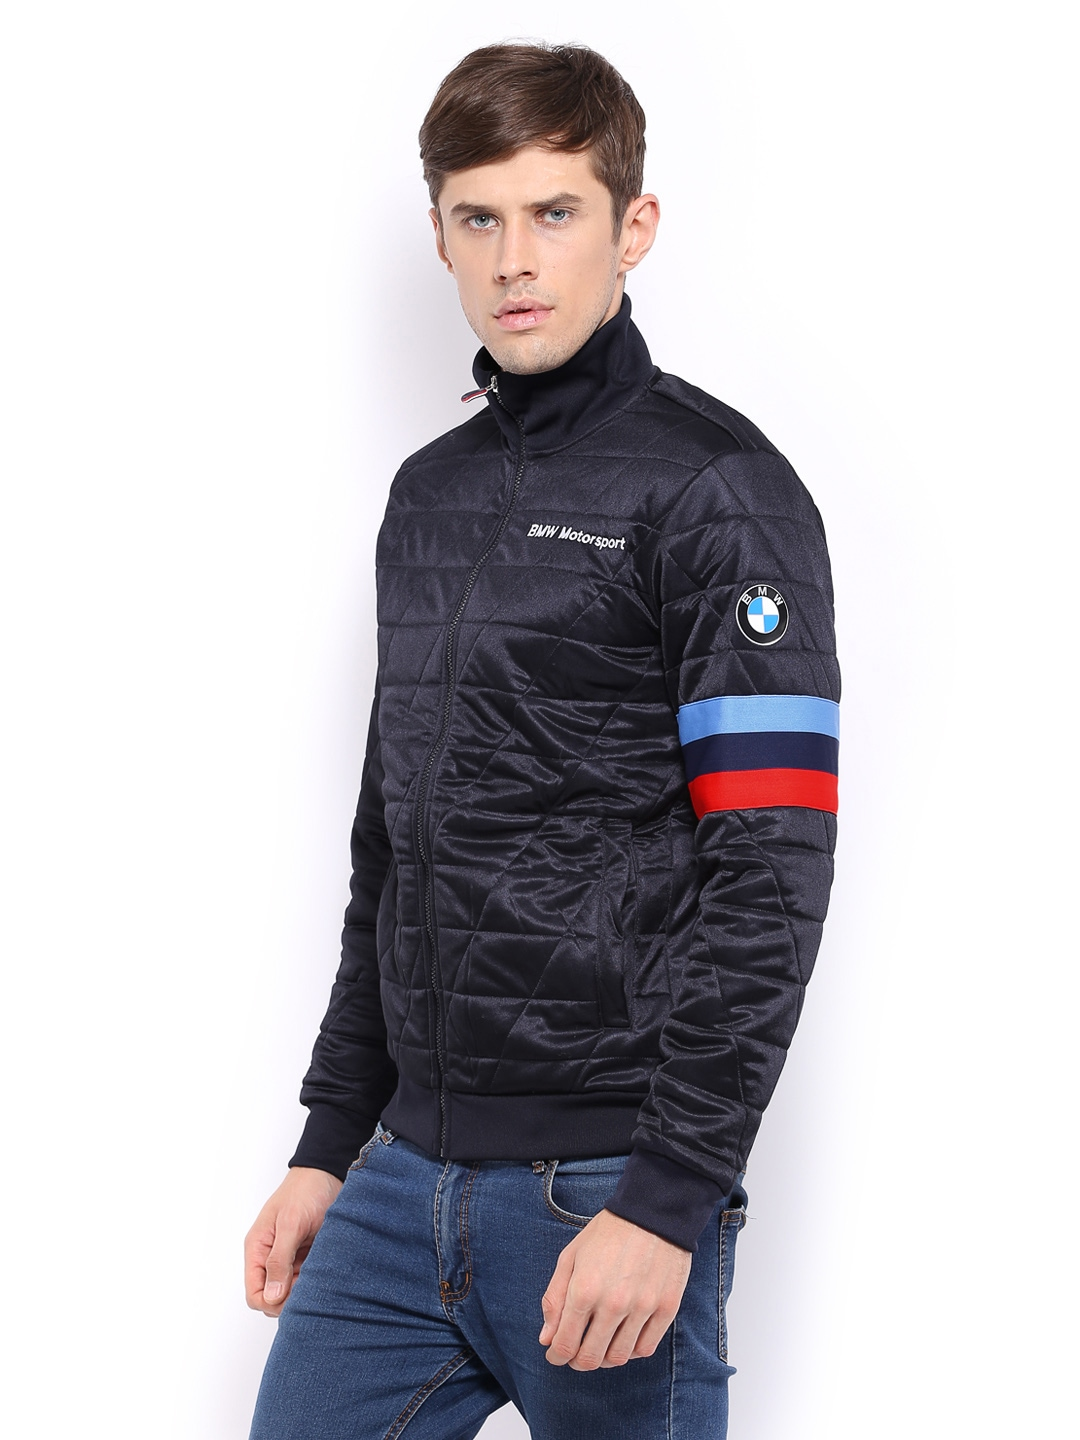 bmw motorsport puma jacket